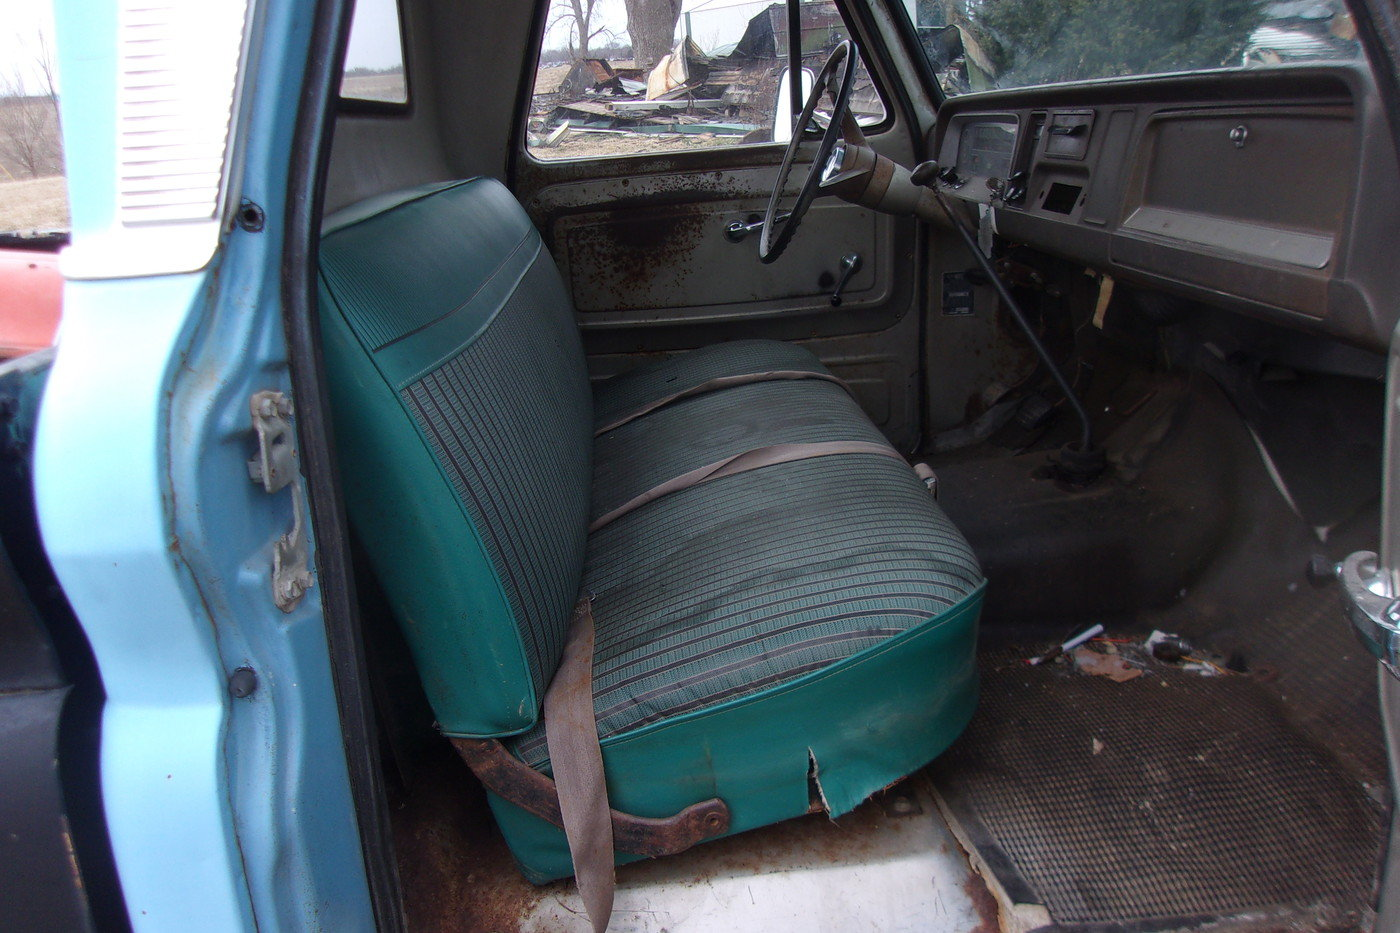 1965 Chevrolet Custom C-10 Pickup  For Sale (picture 3 of 6)